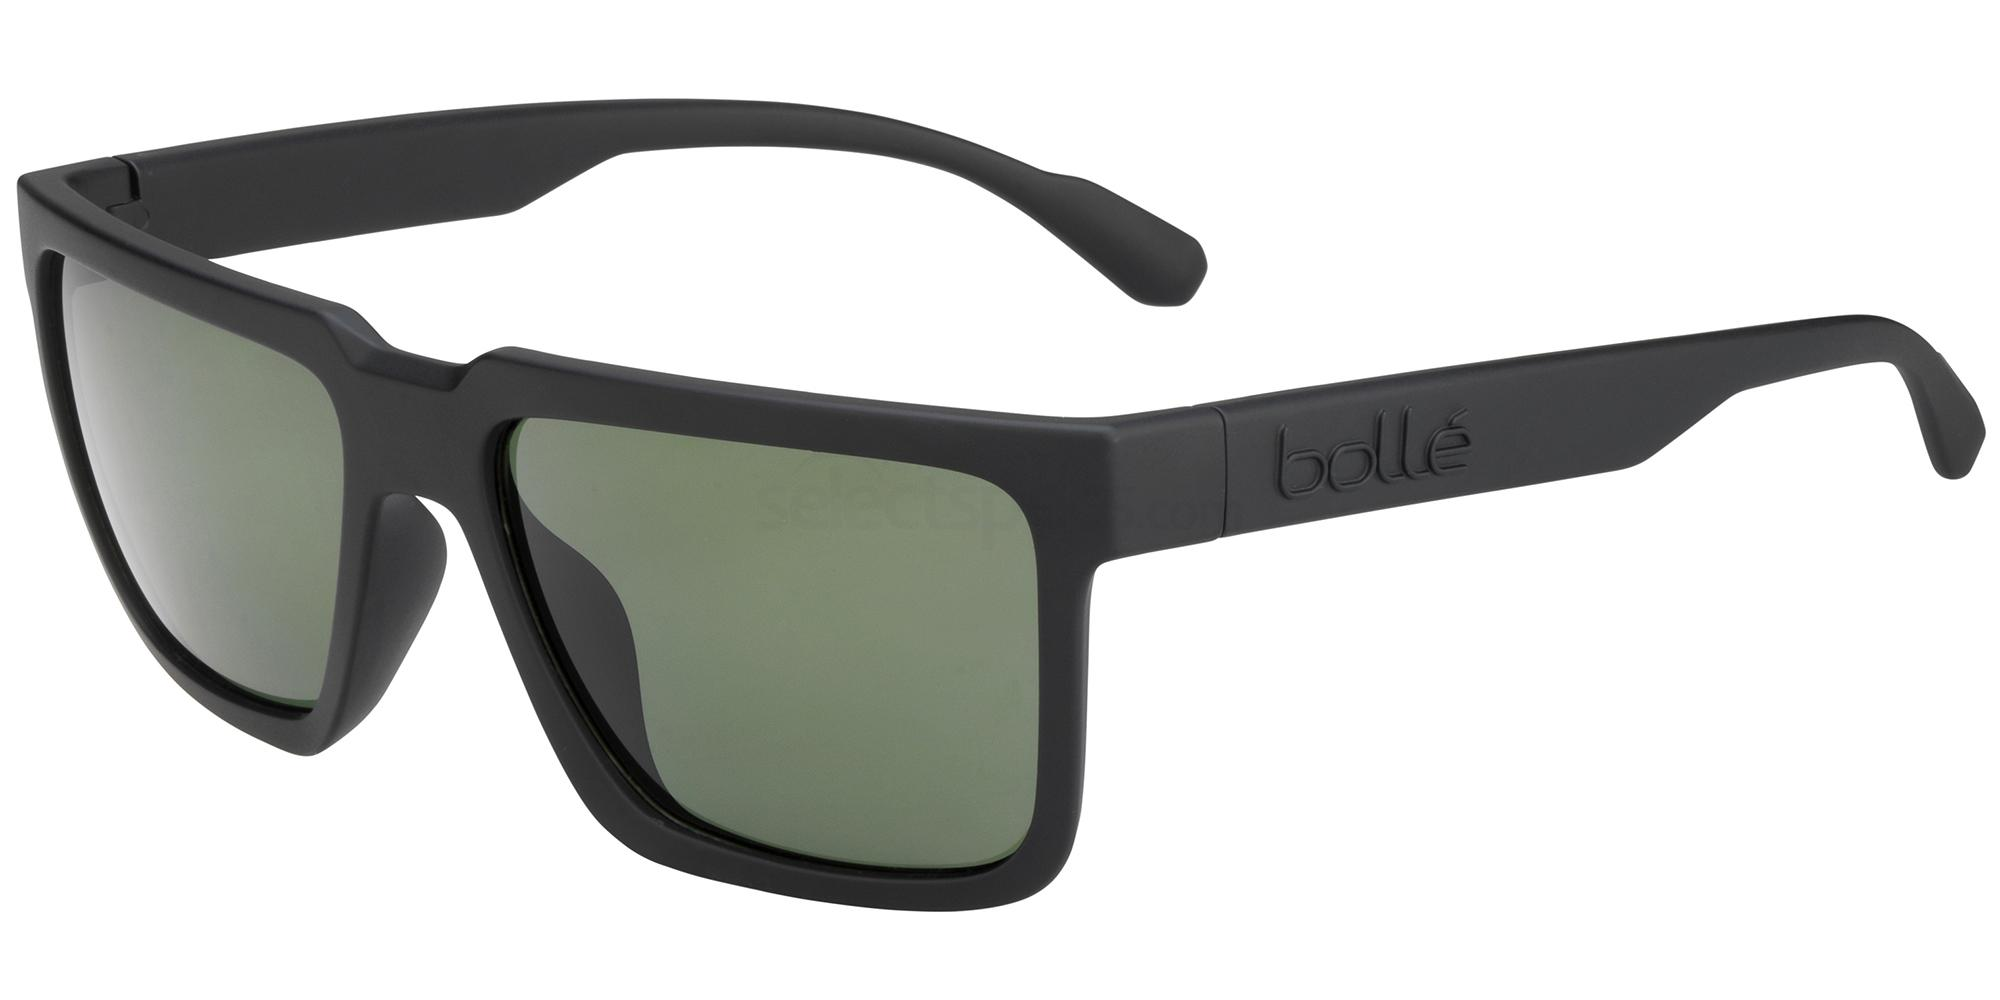 Bolle FRANK valentines gifts for him sporty sunglasses